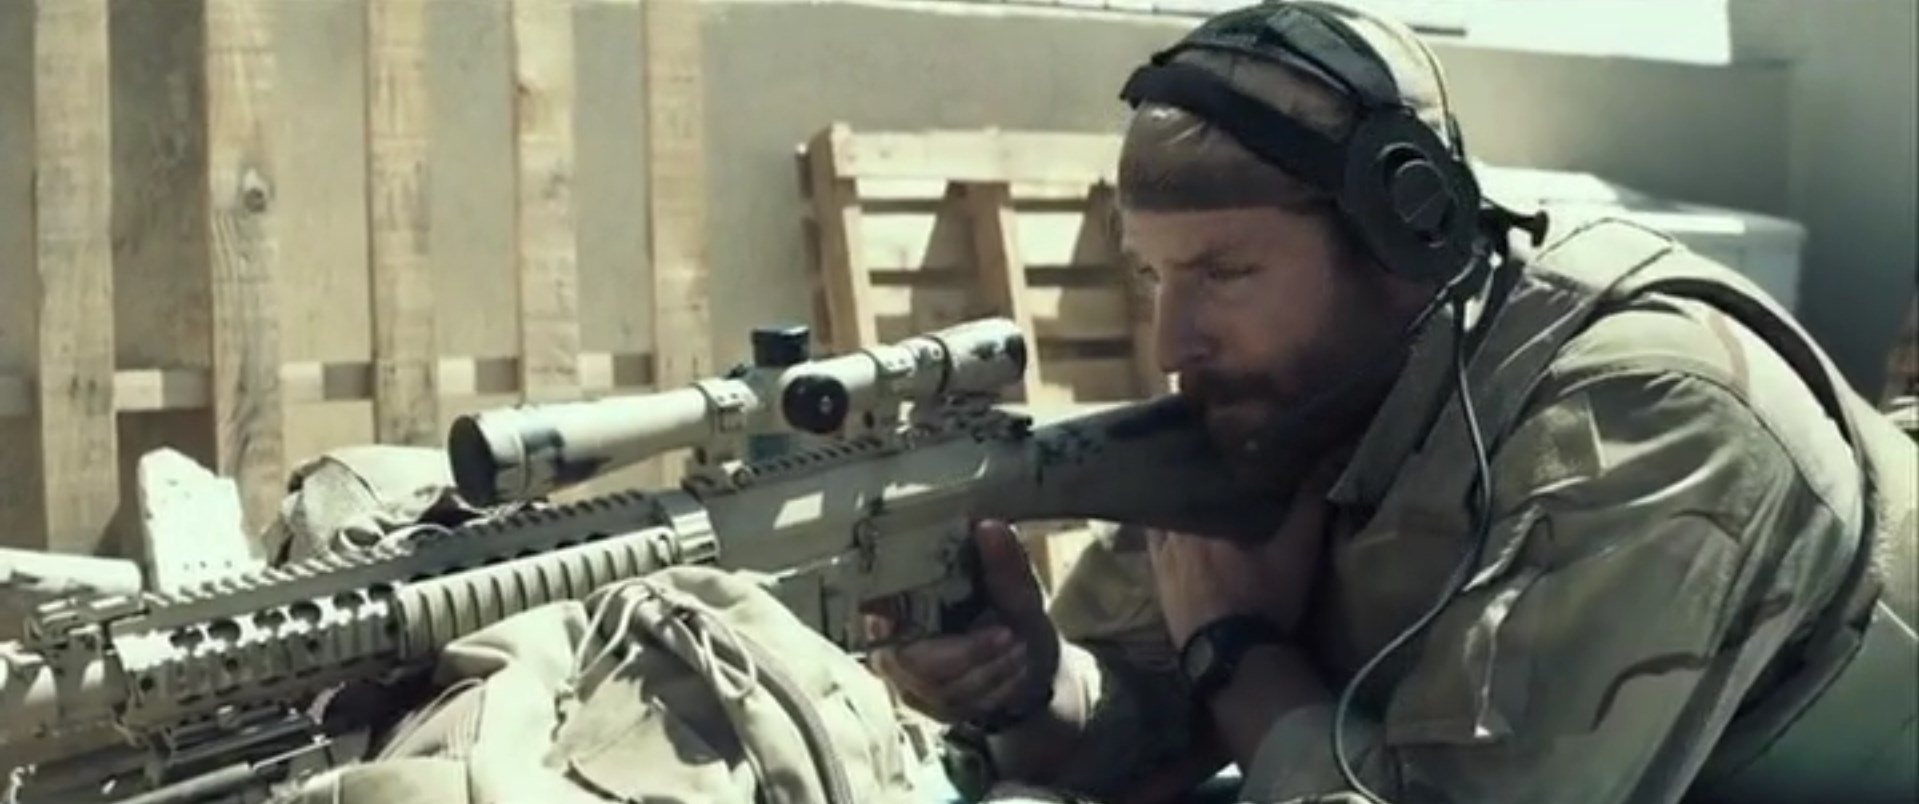 American Sniper - movie 2015 pic 2 wallpaper image - Armies of the